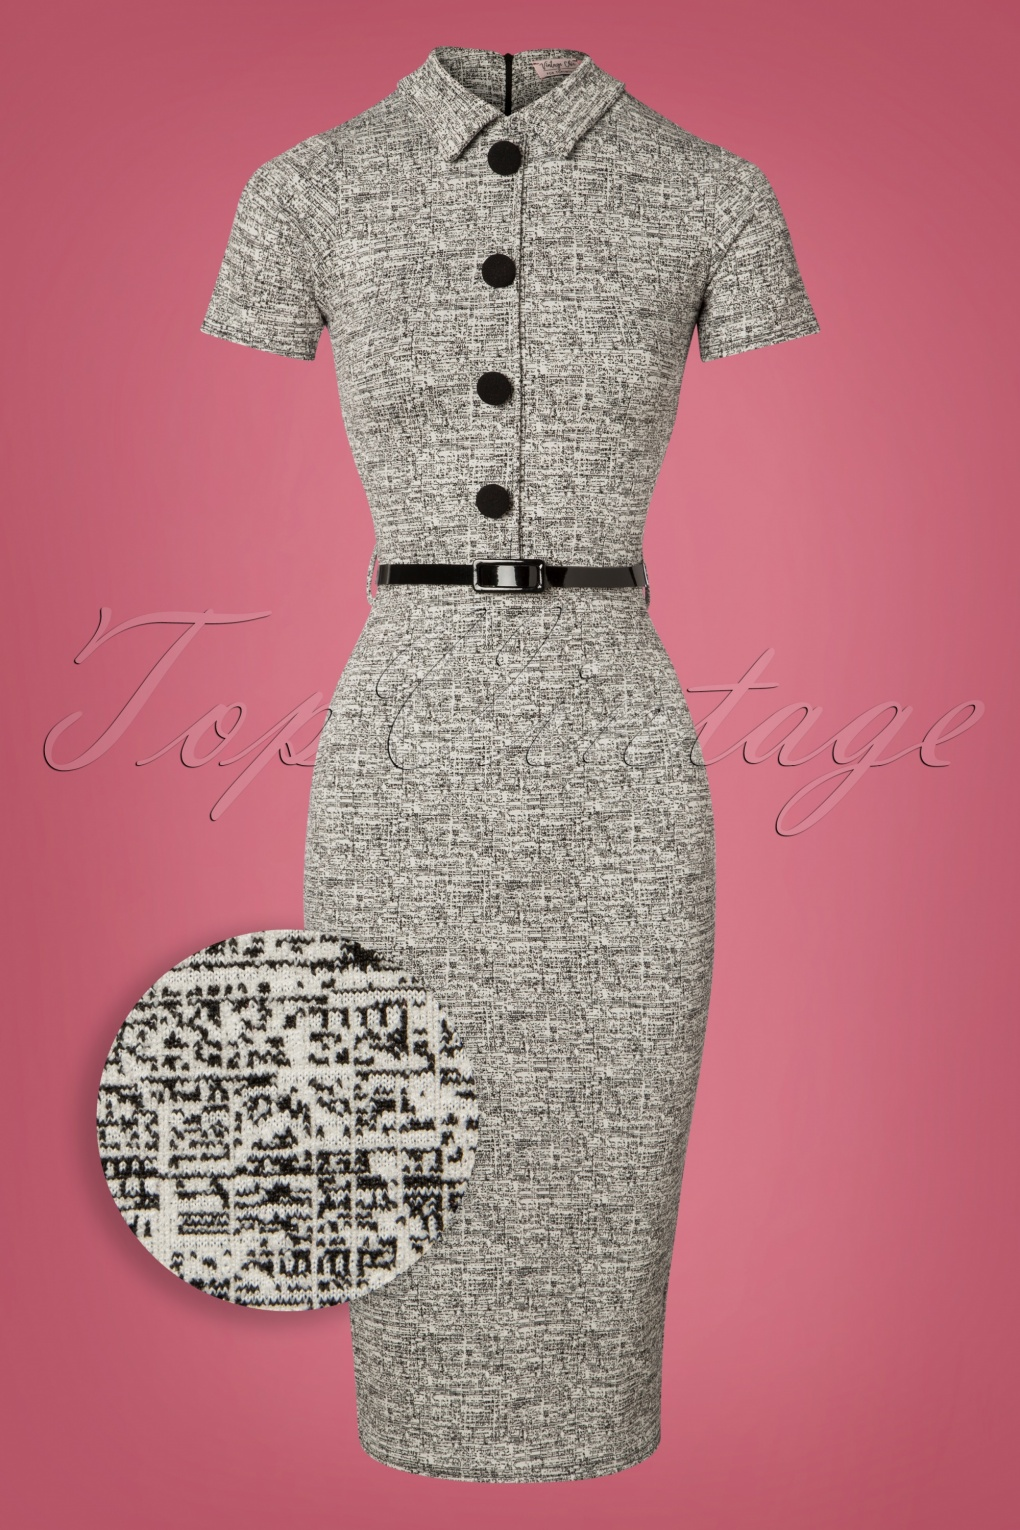 Vintage Style Dresses | Vintage Inspired Dresses 60s Jackie Pencil Dress in Grey Melange £57.73 AT vintagedancer.com